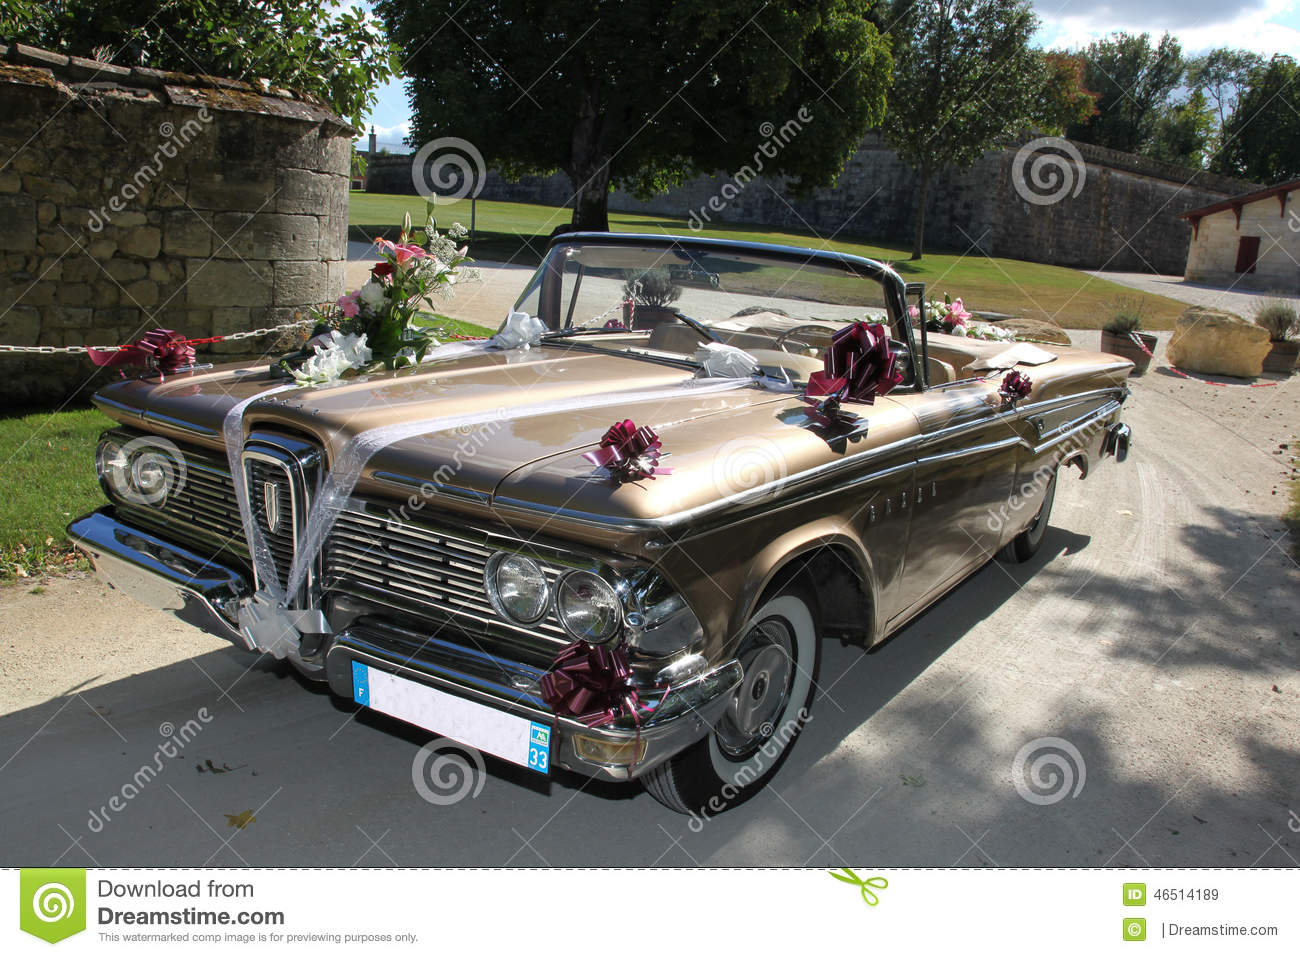 Vintage wedding cars stock image. Image of cars, detail - 46514189